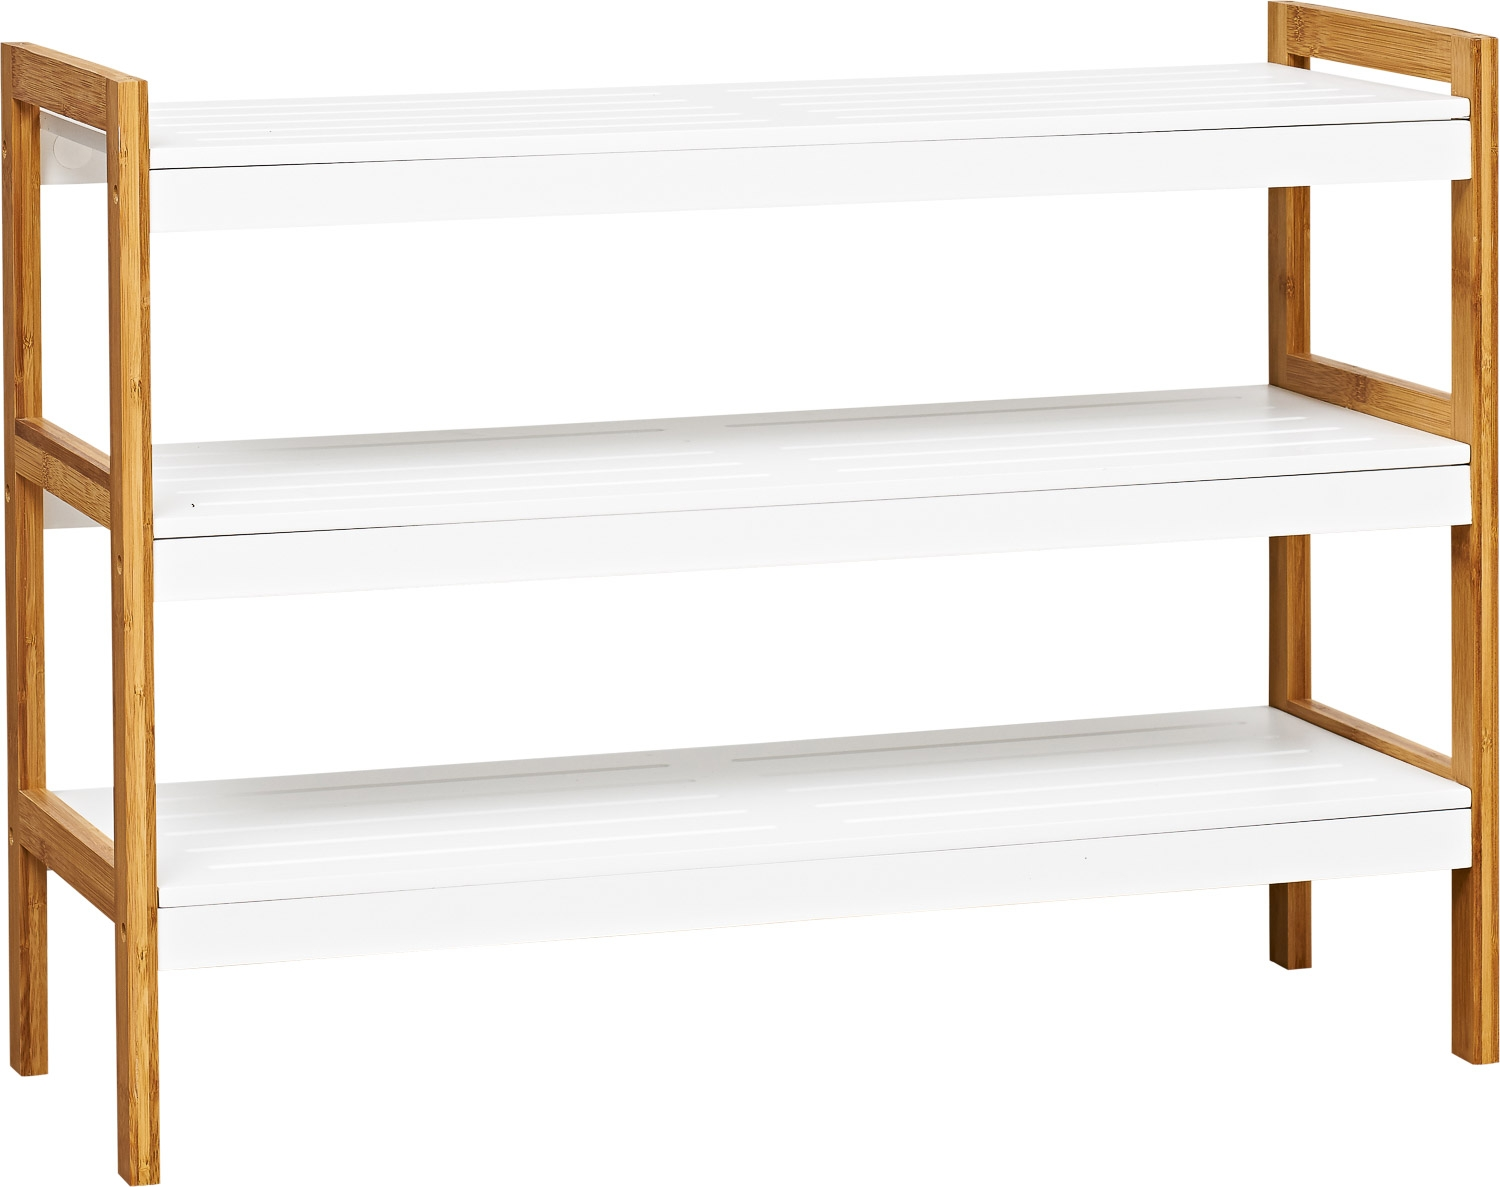 Shoe Rack 3 Tier White Bamboo From Storage Box